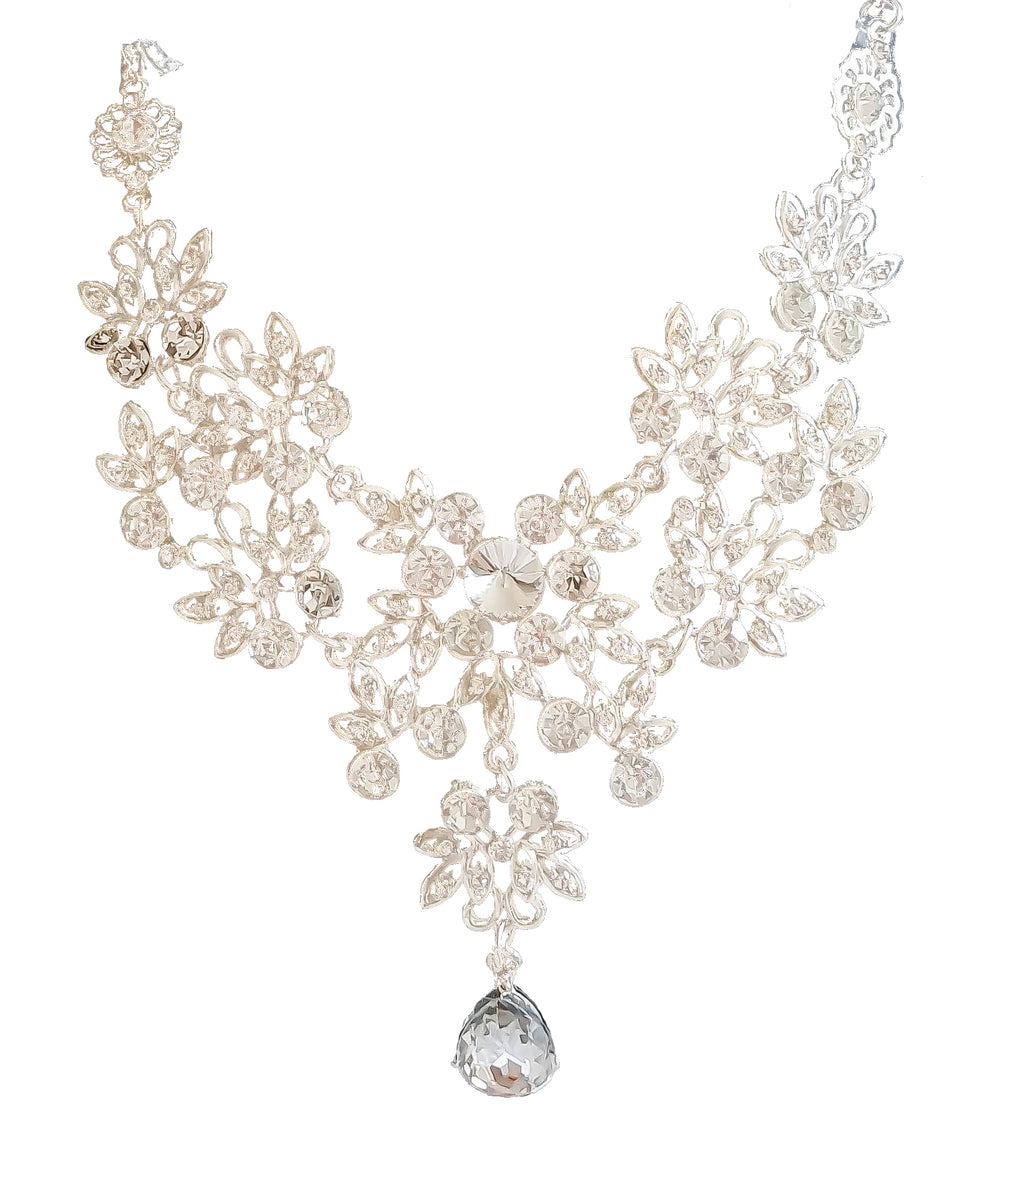 Flower Drape Necklace and Earrings Set - Vlure